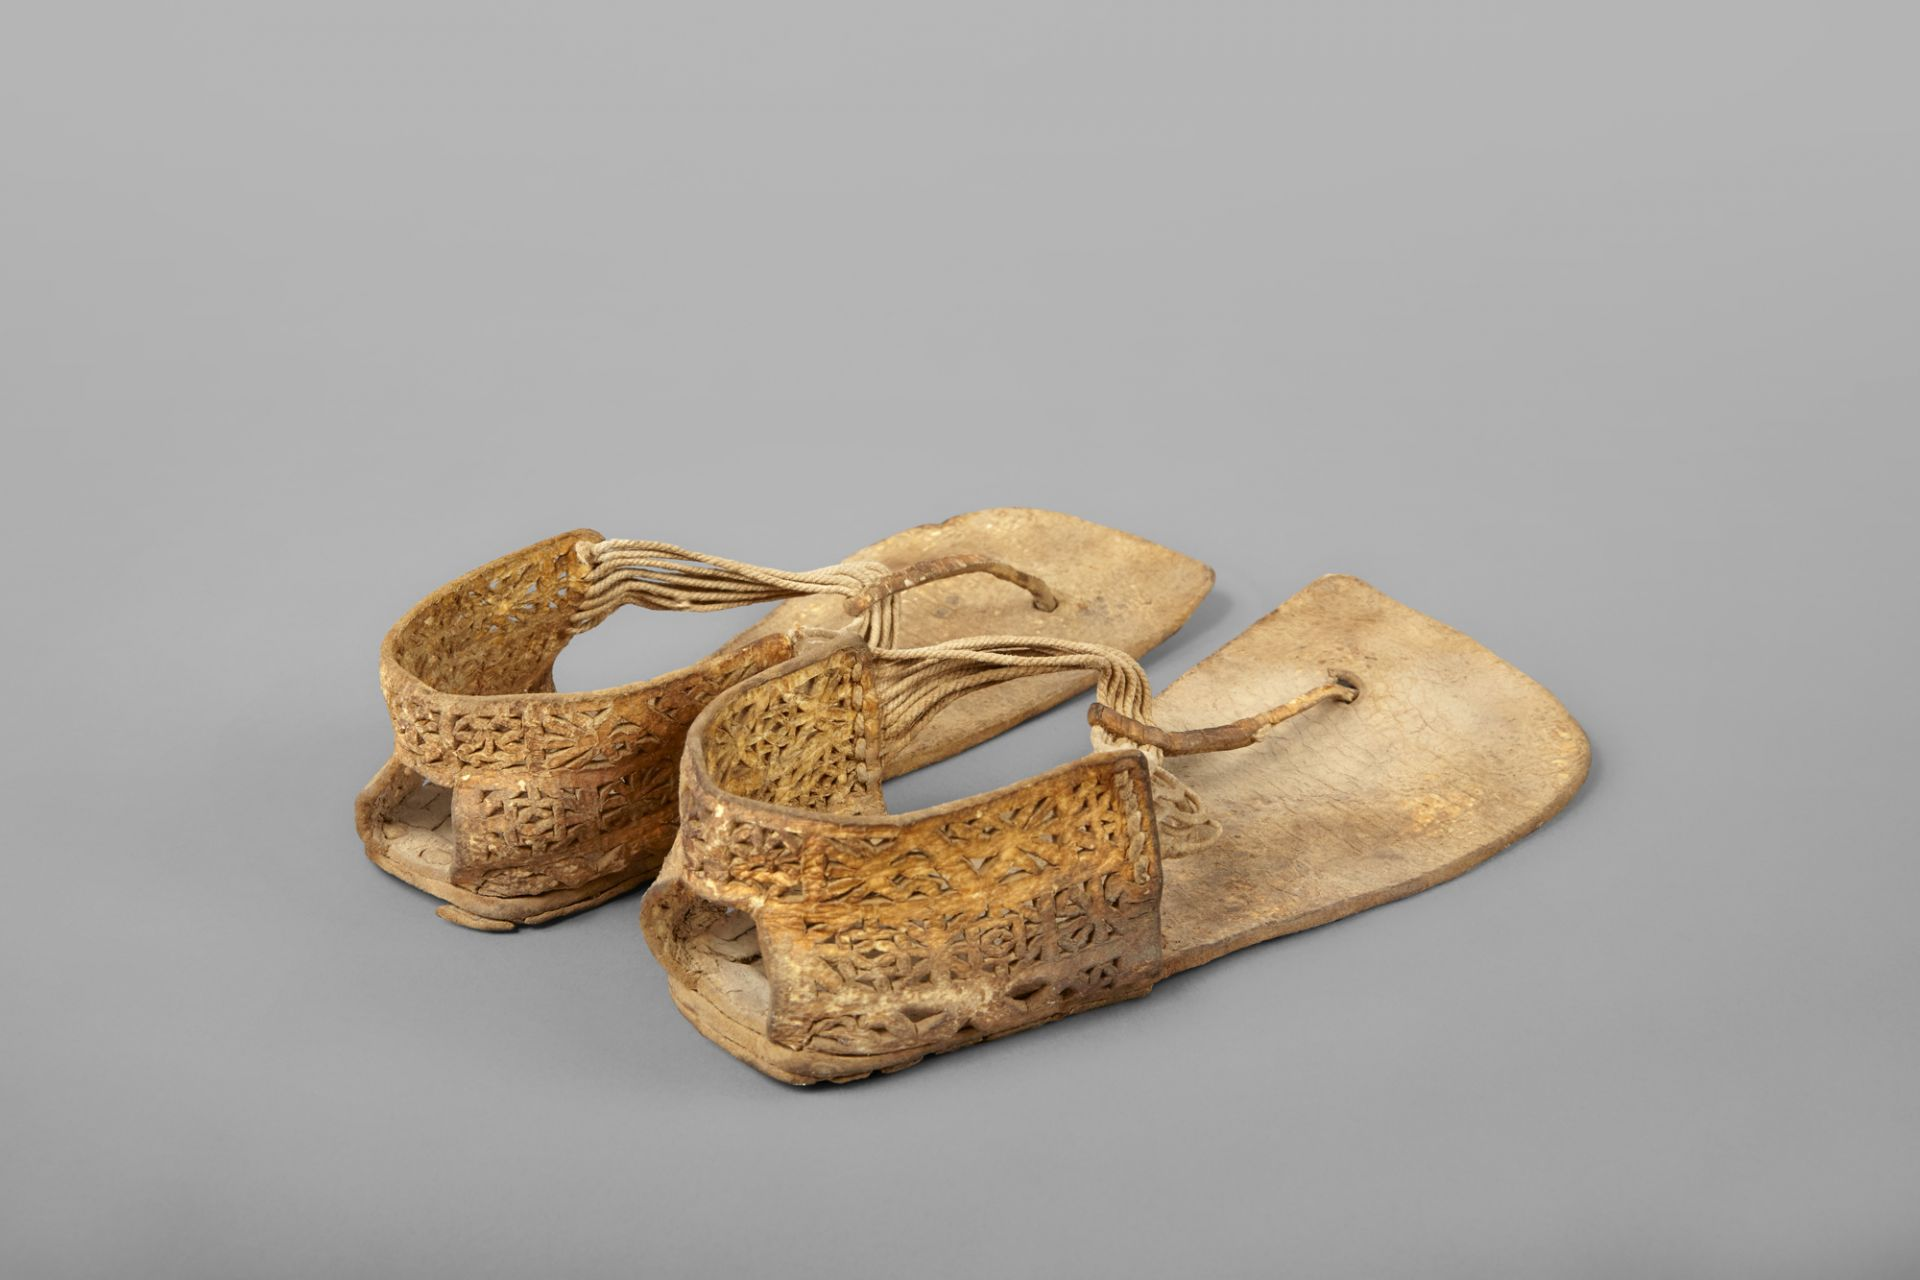 Thong sandals with a T-shaped strap, Peru, 300−200 BCE